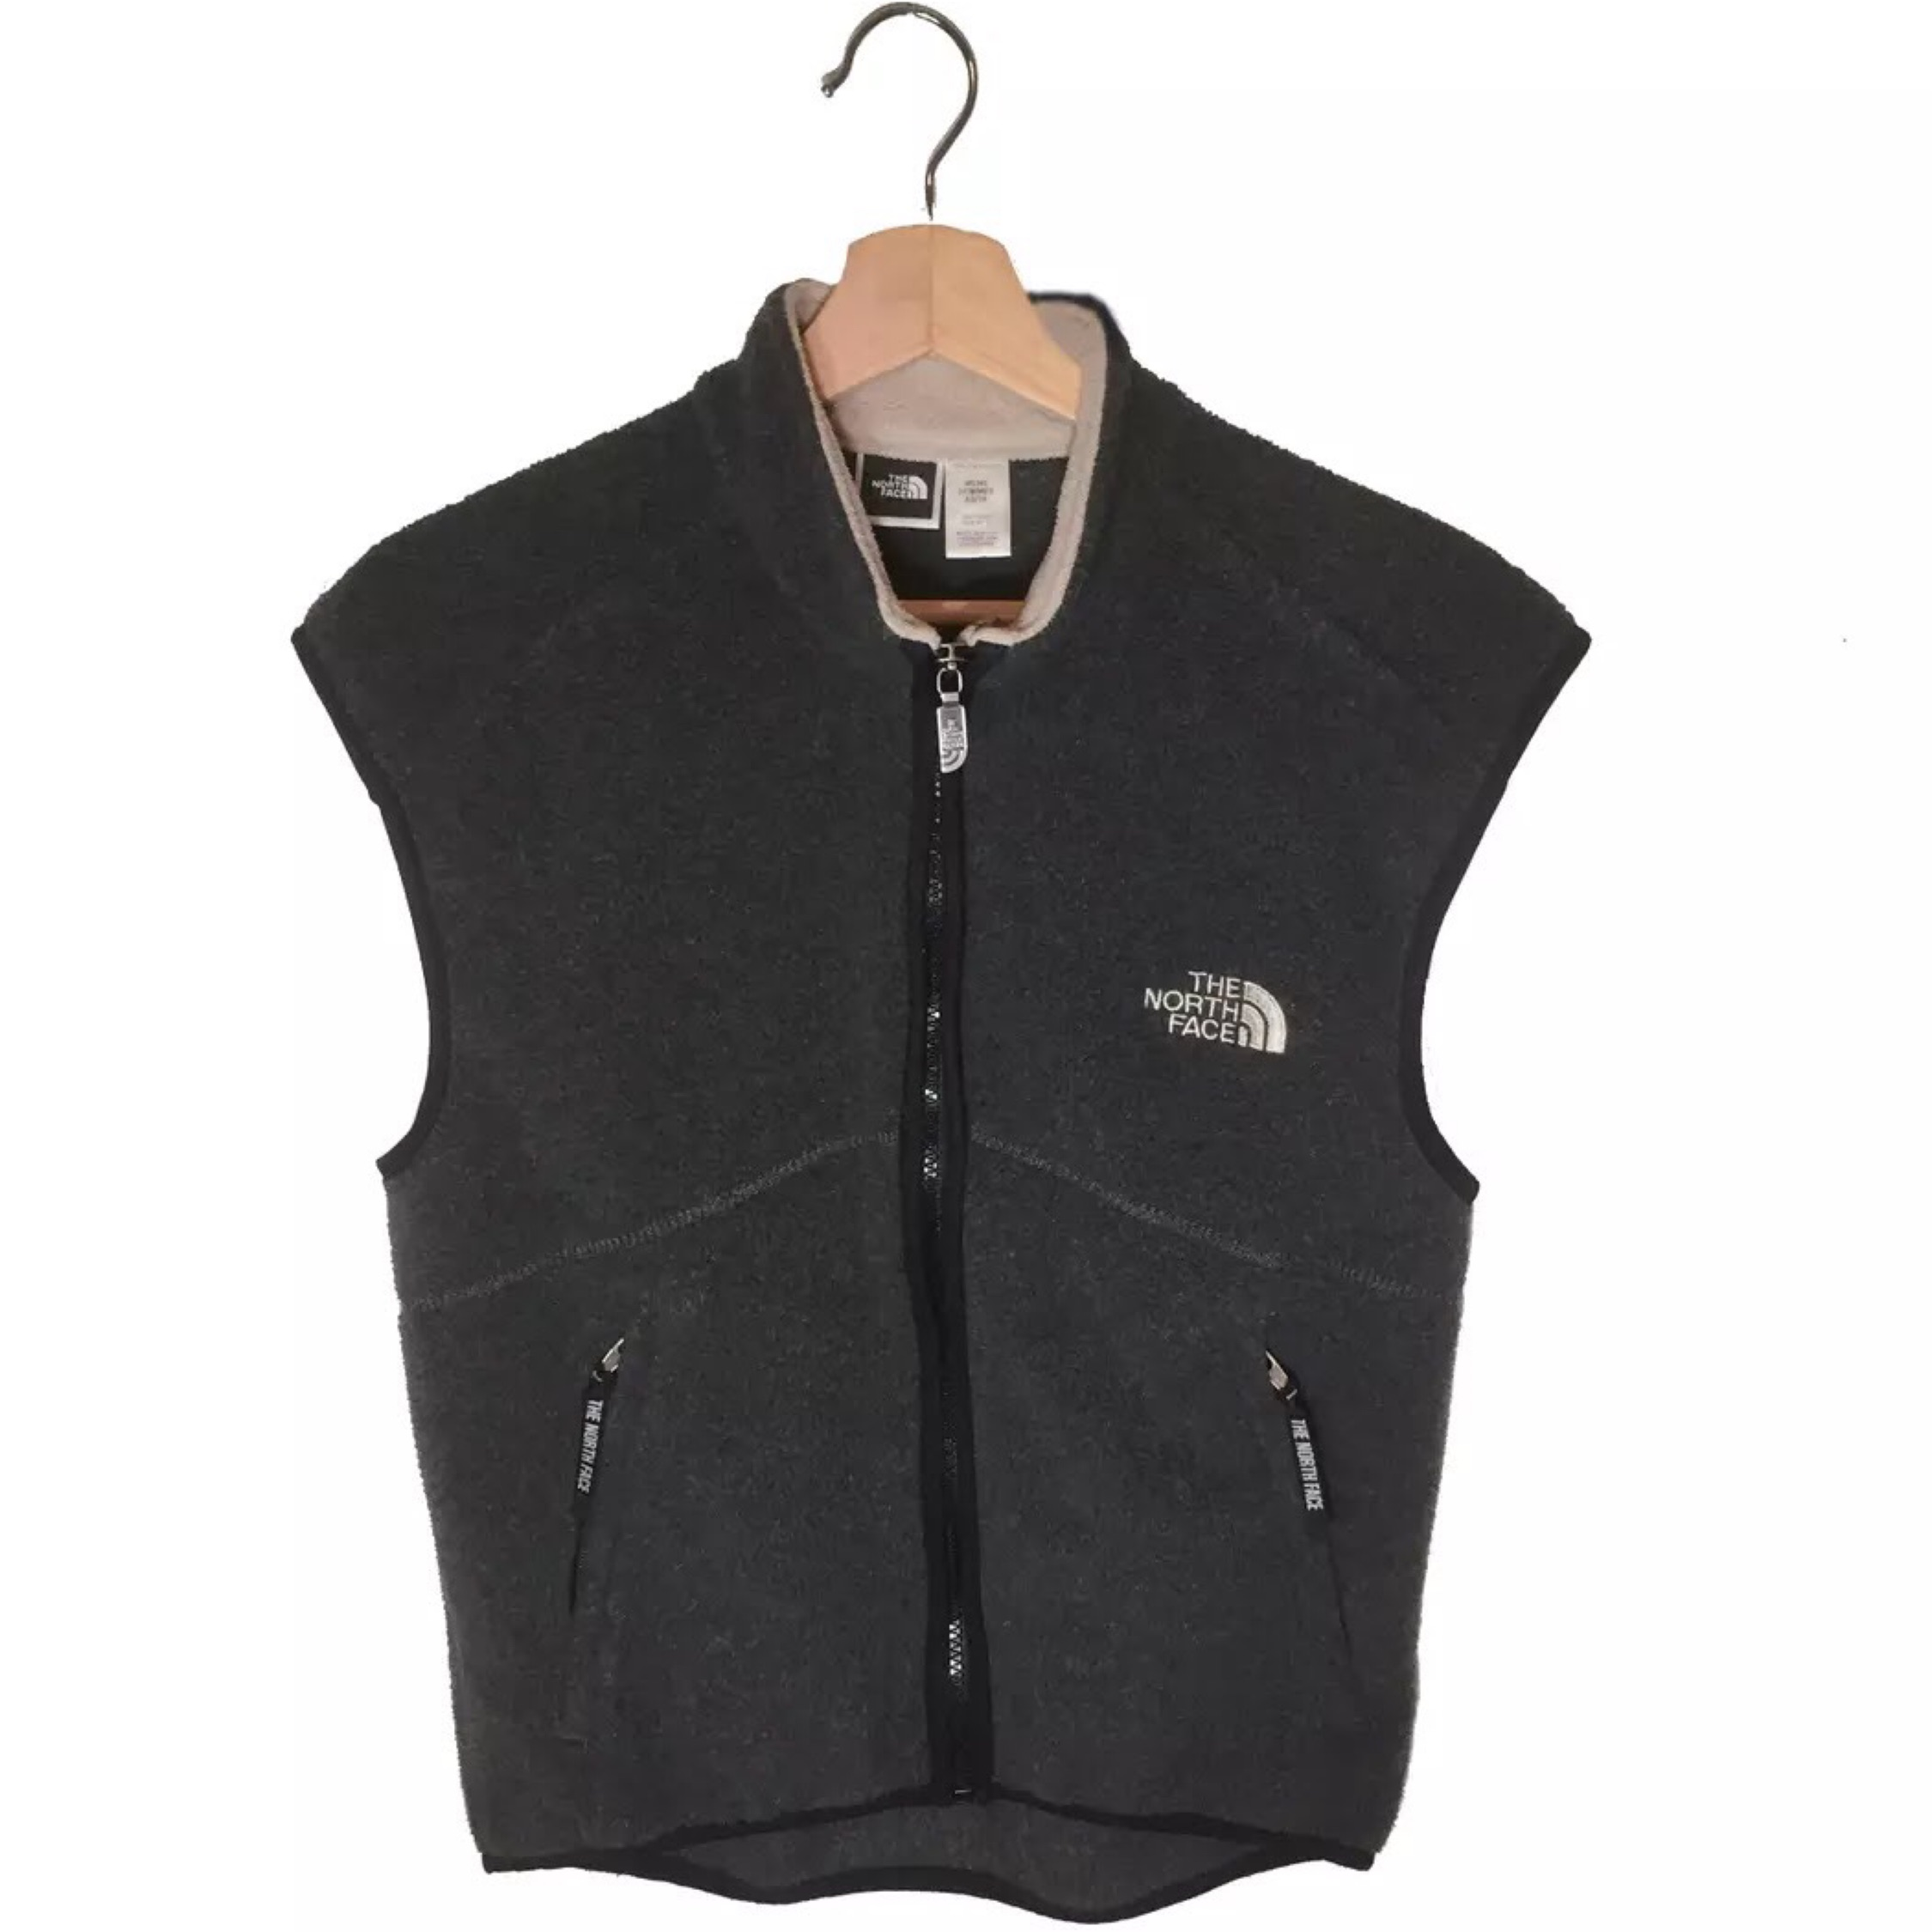 The North Face Embroidered Fleece Vest